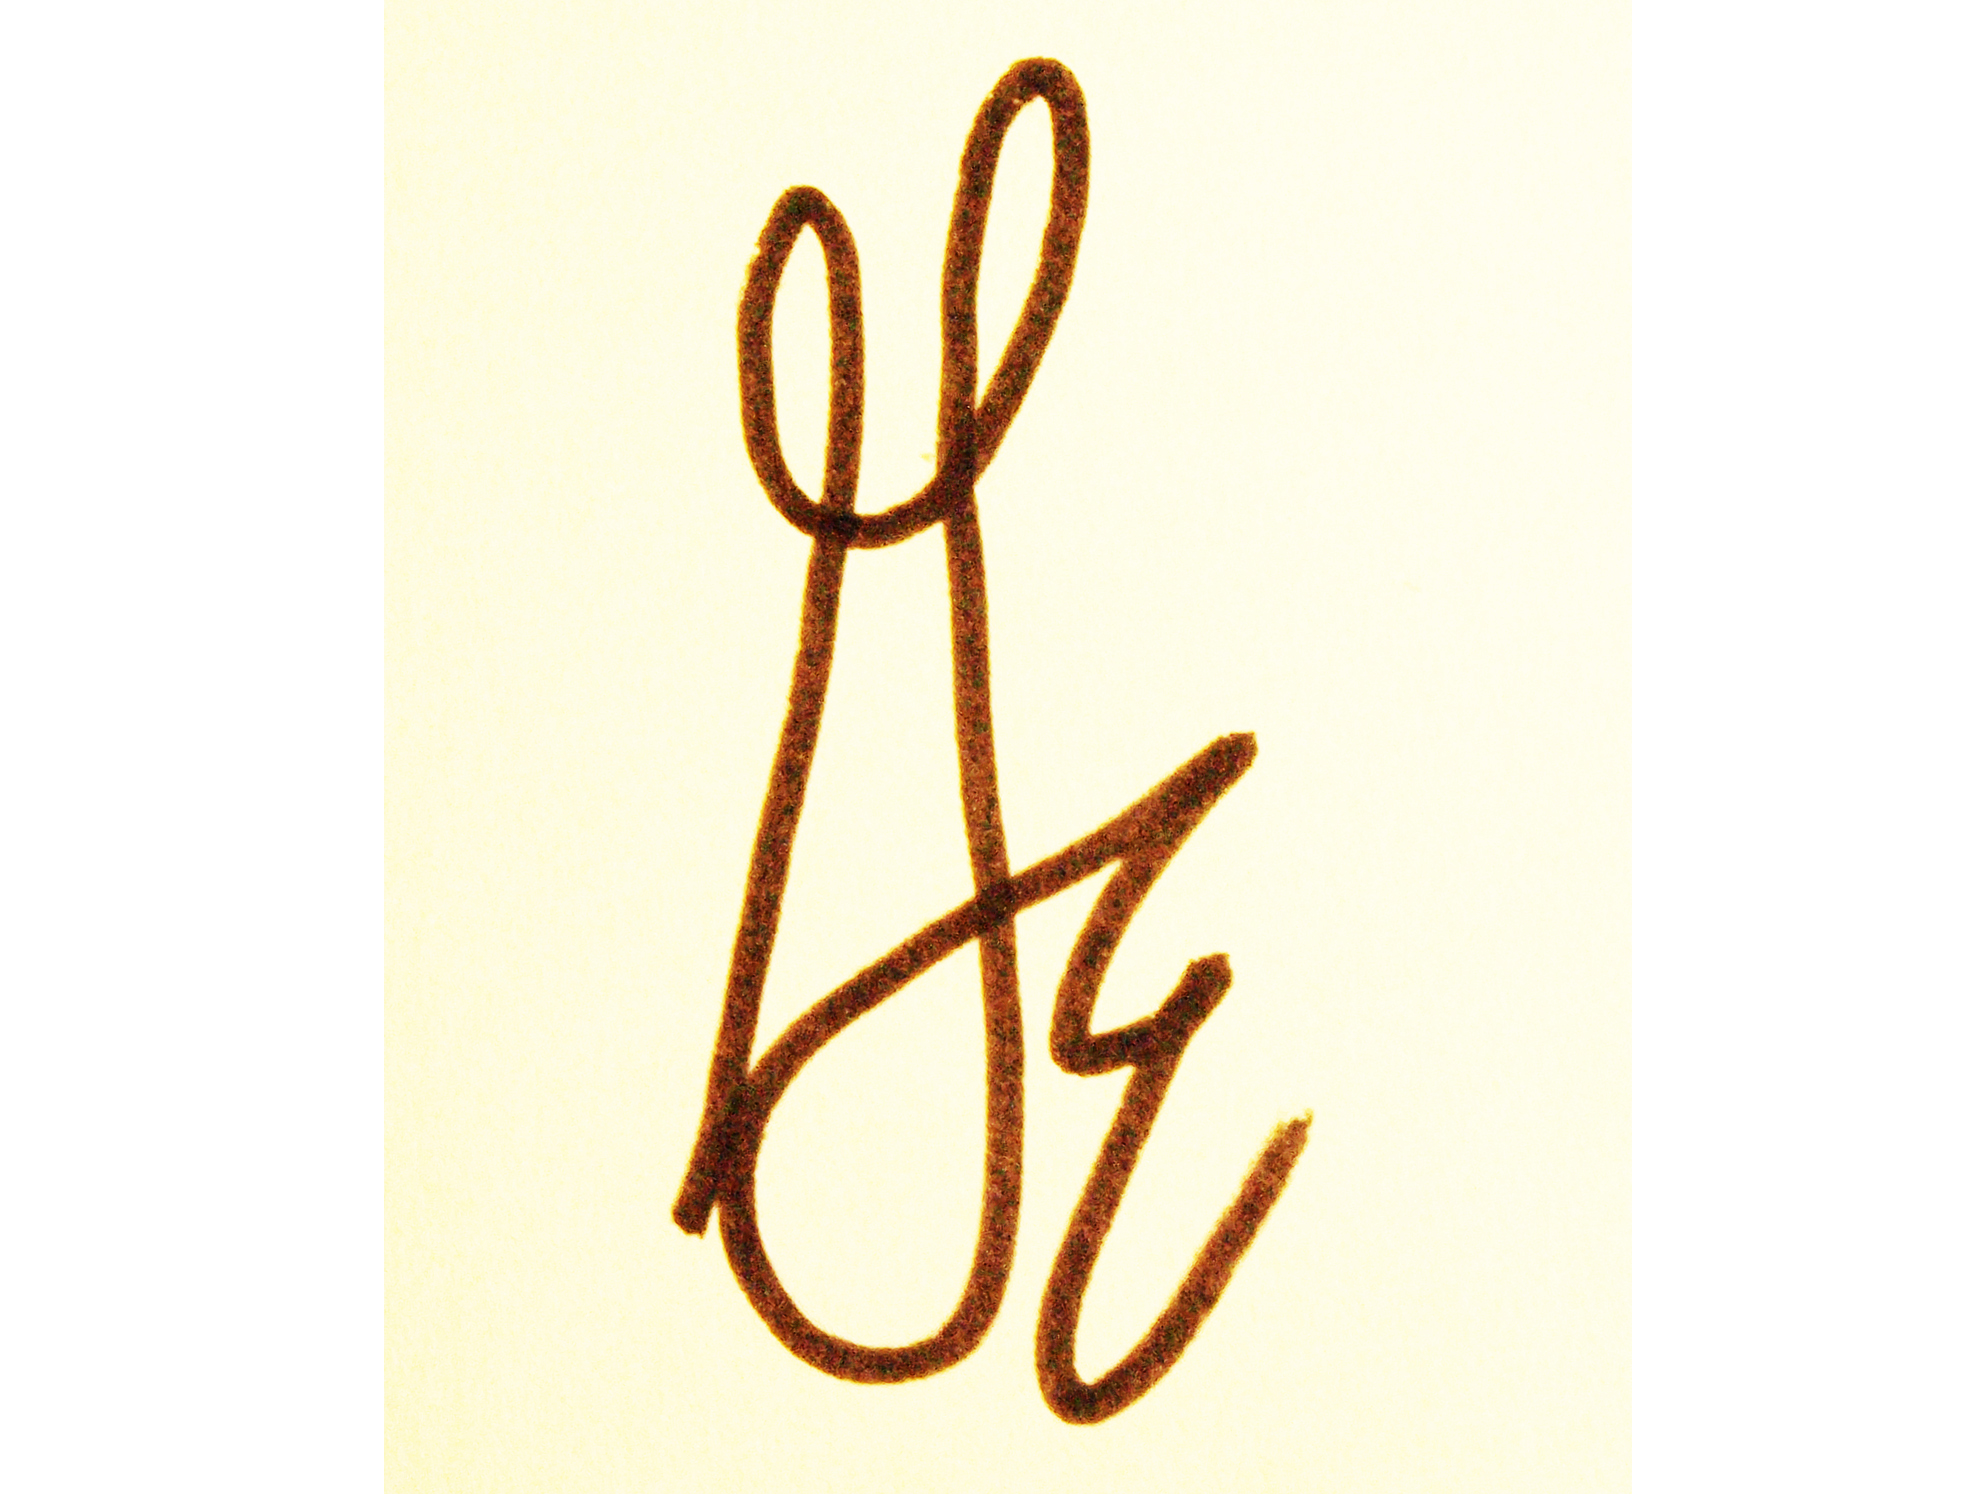 George Marlowe Signature